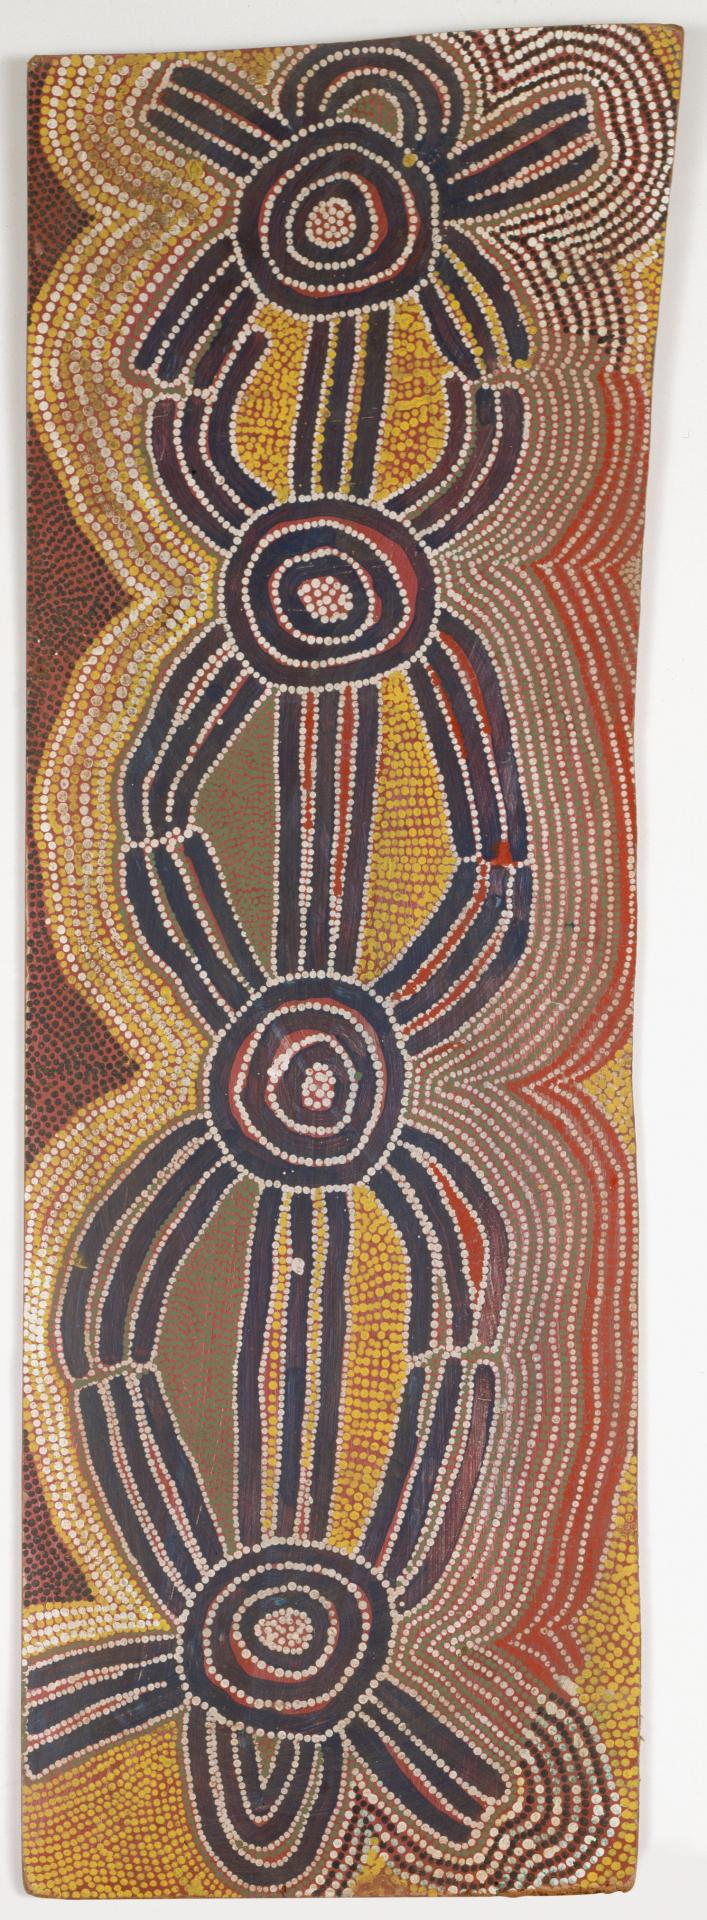 Lungkarda Jukurrpa (Blue-tongue Lizard Dreaming)